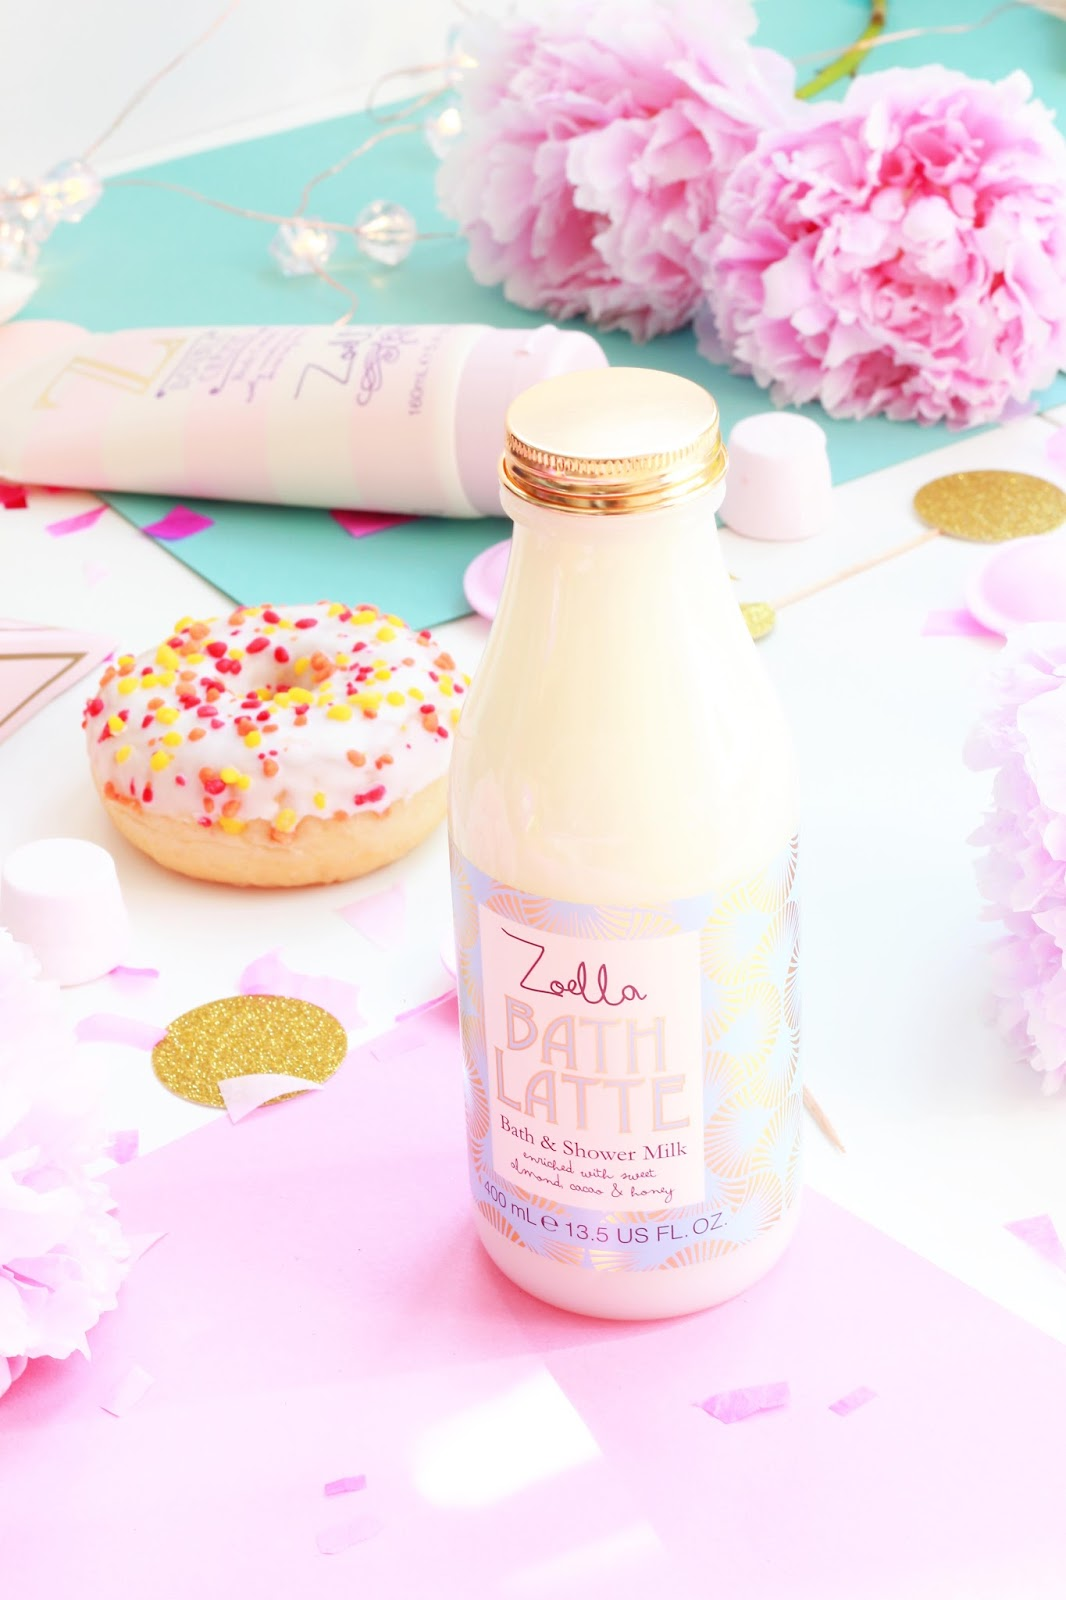 Beauty, Zoella Beauty, Drugstore, Zoella, Feel Unique, Zoe Sugg, Zoella Beauty range, Zoella Sweet Inspirations, Youtuber, Bath Latte, Zoella Bath latte